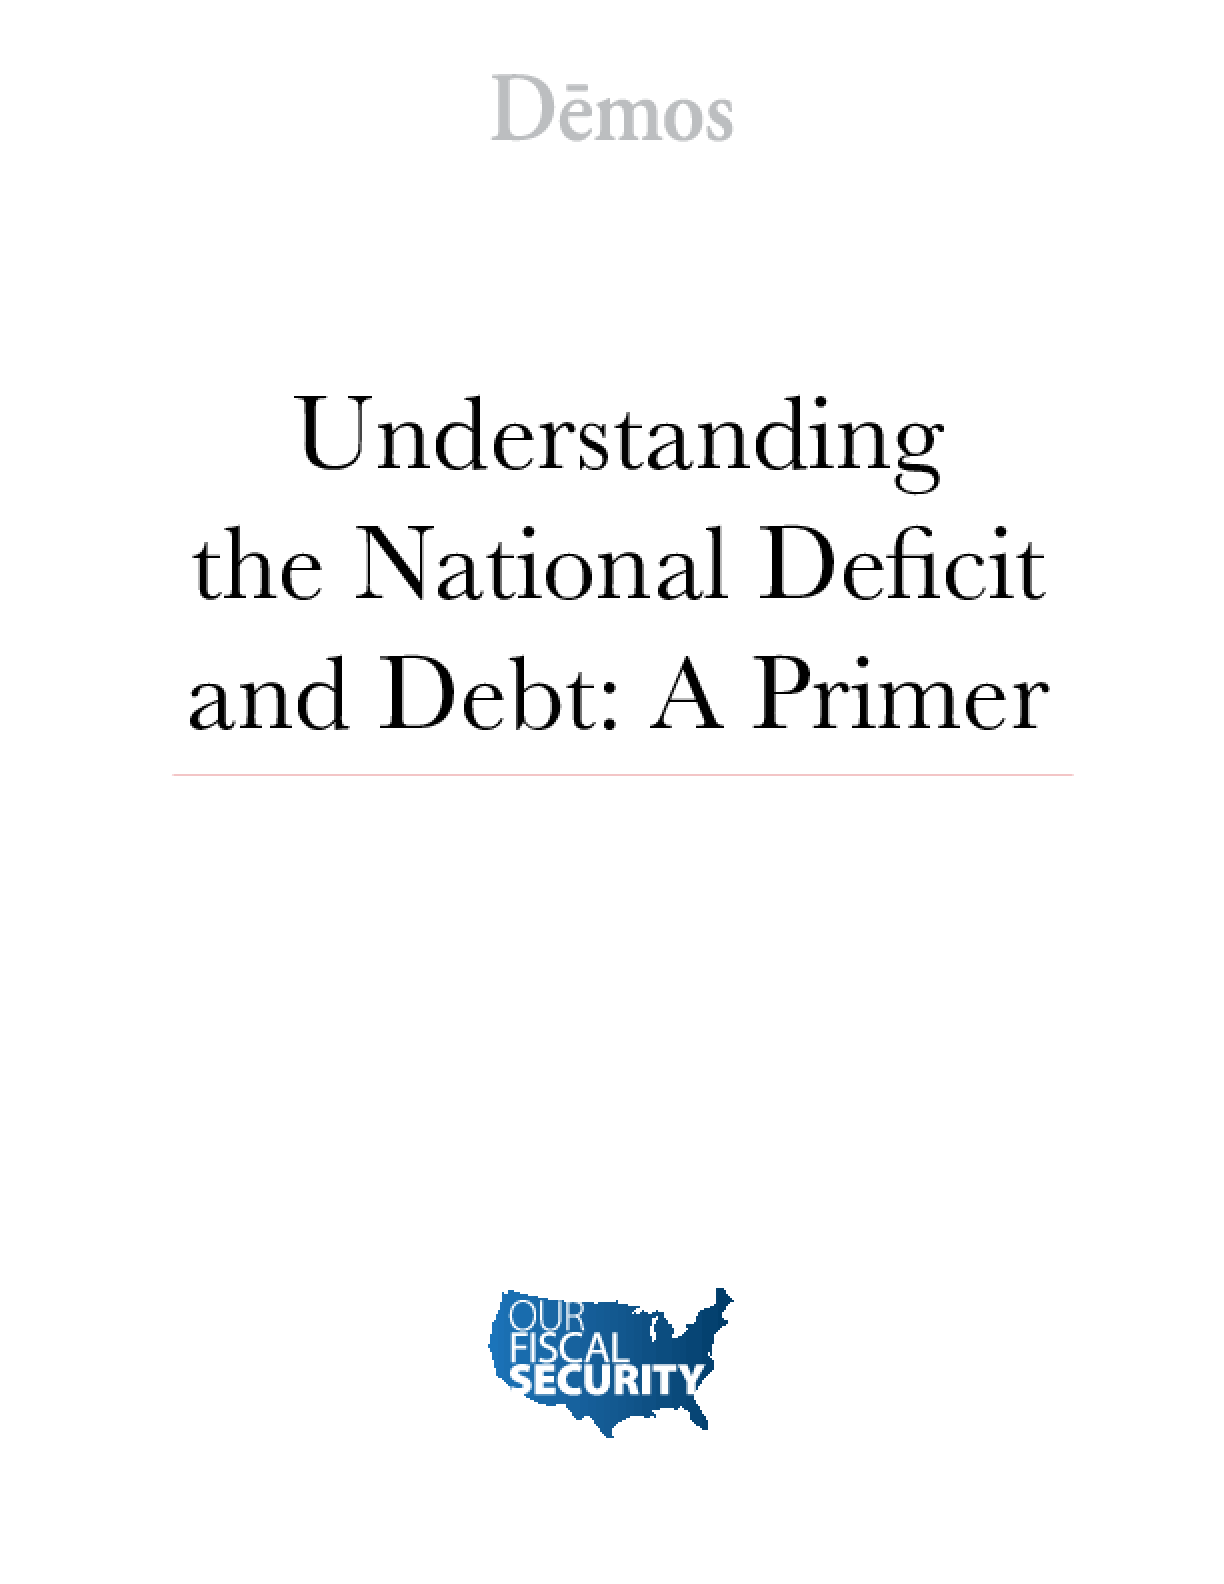 Understanding the Federal Deficit and the National Debt